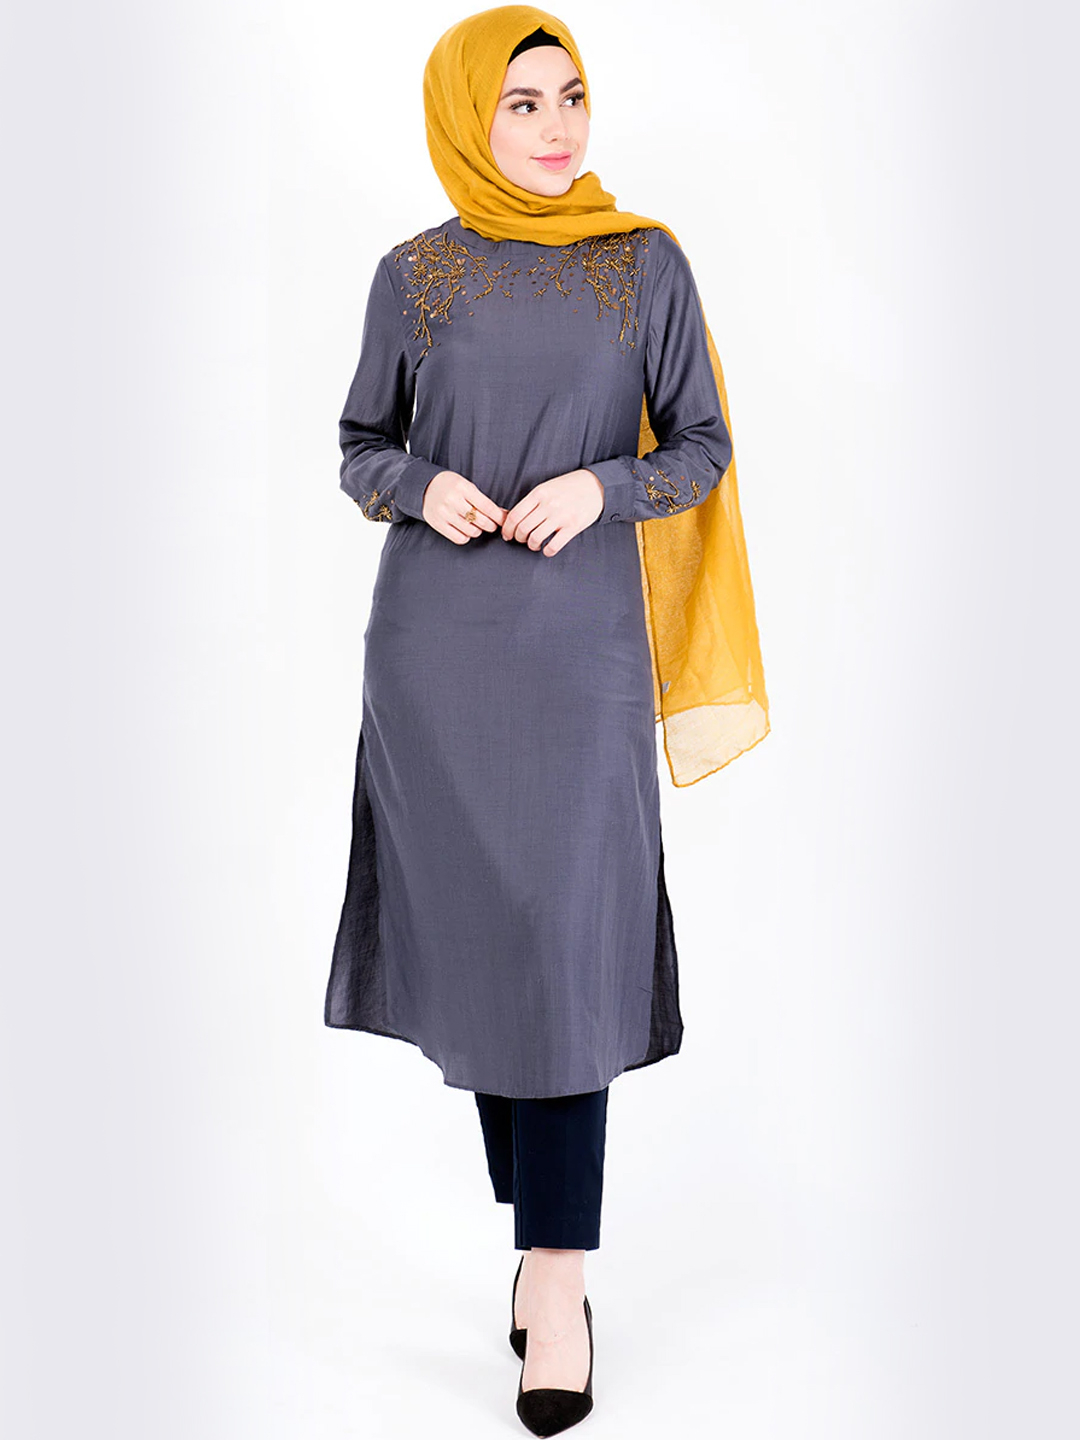 100% Polyester Midi Dress With Gold Beads In Grey